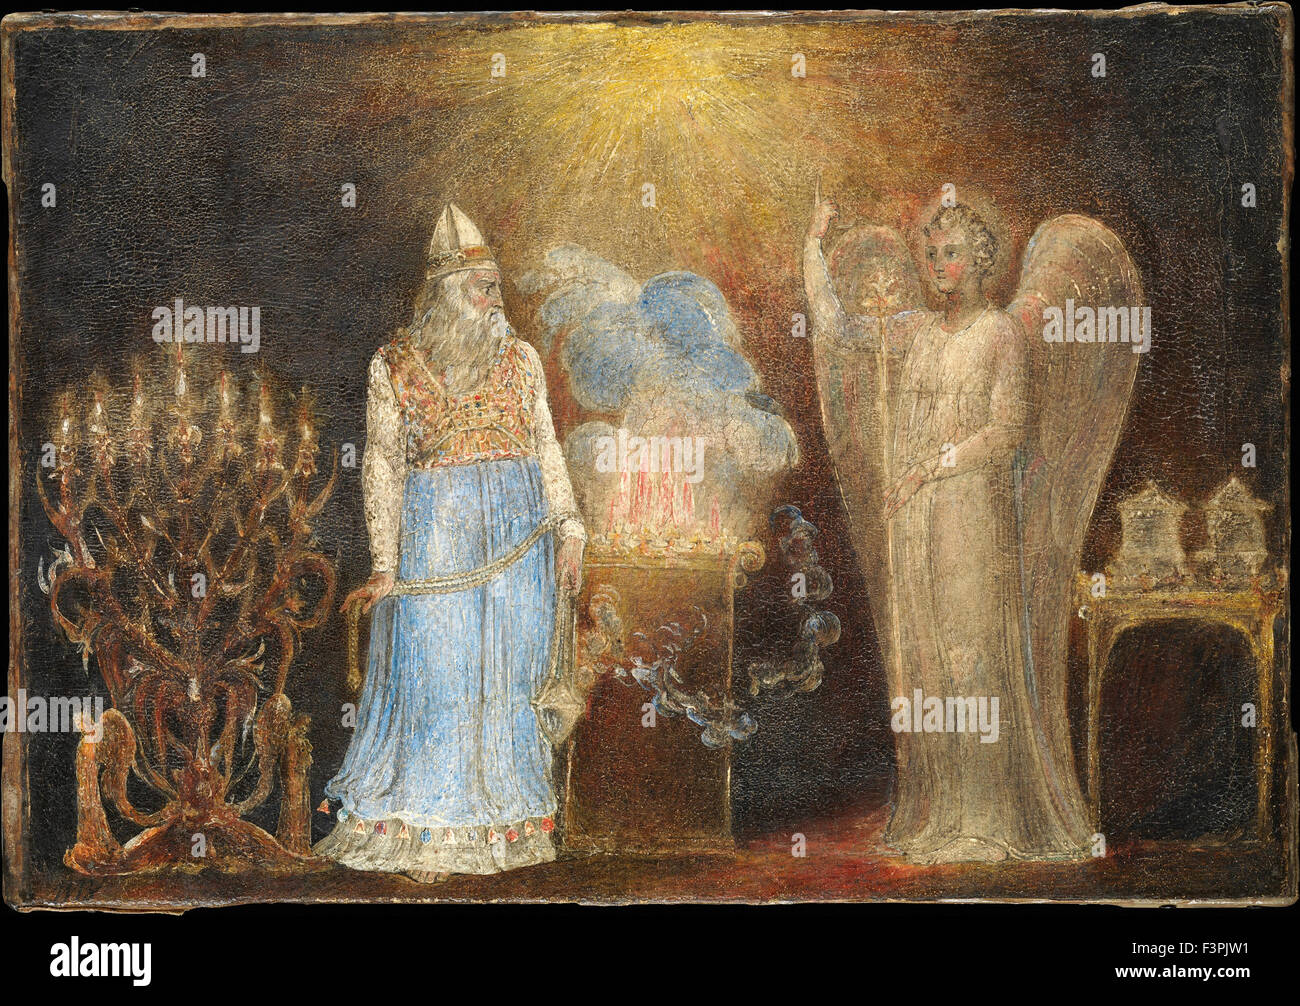 William BLake - The Angel Appearing to Zacharias - Stock Image